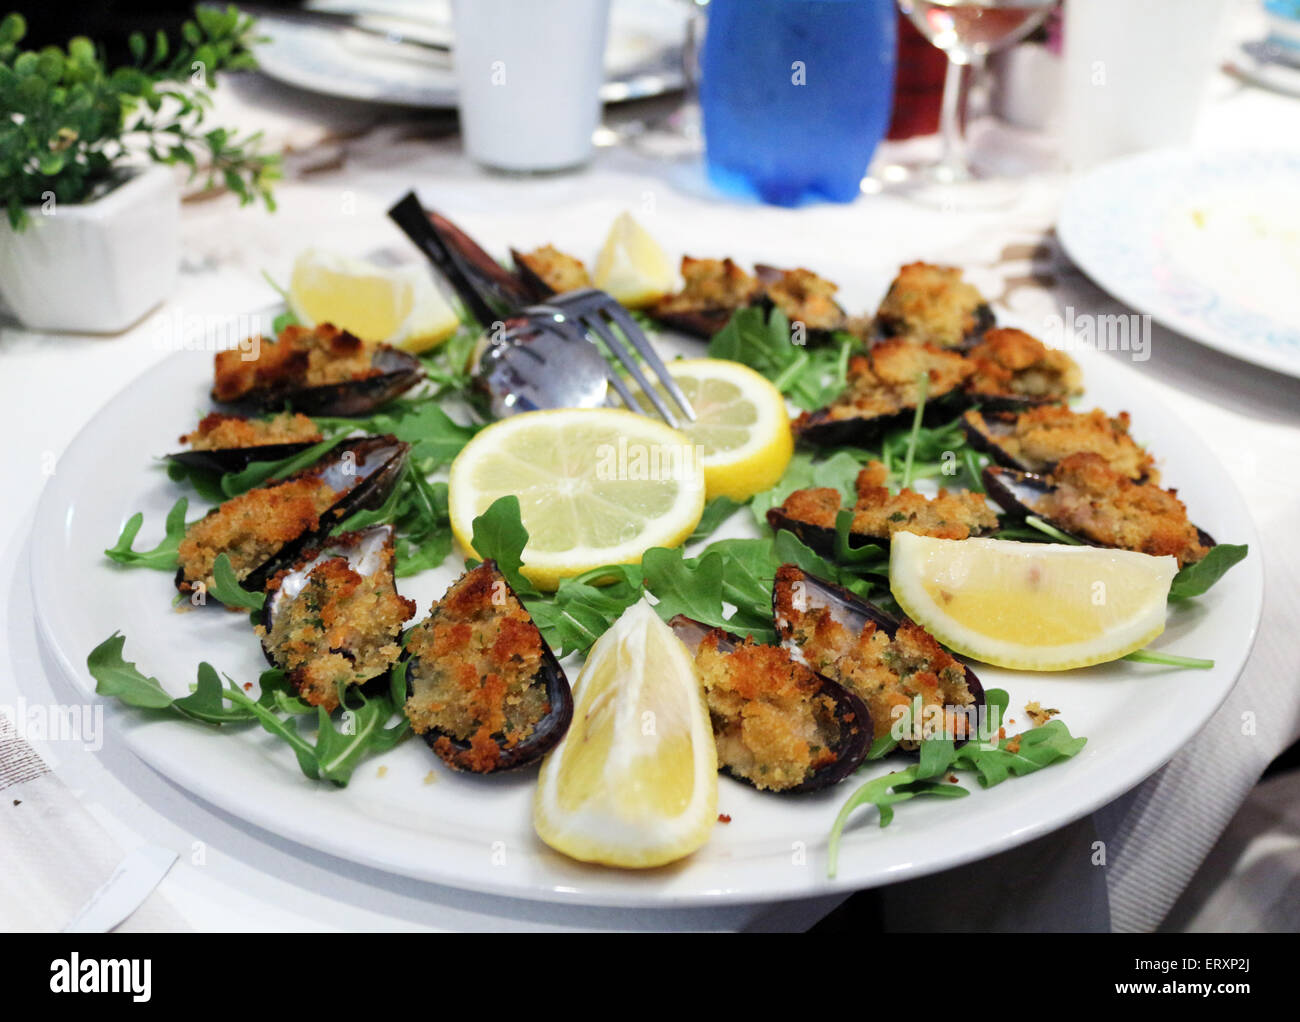 gratin of mussels - Stock Image